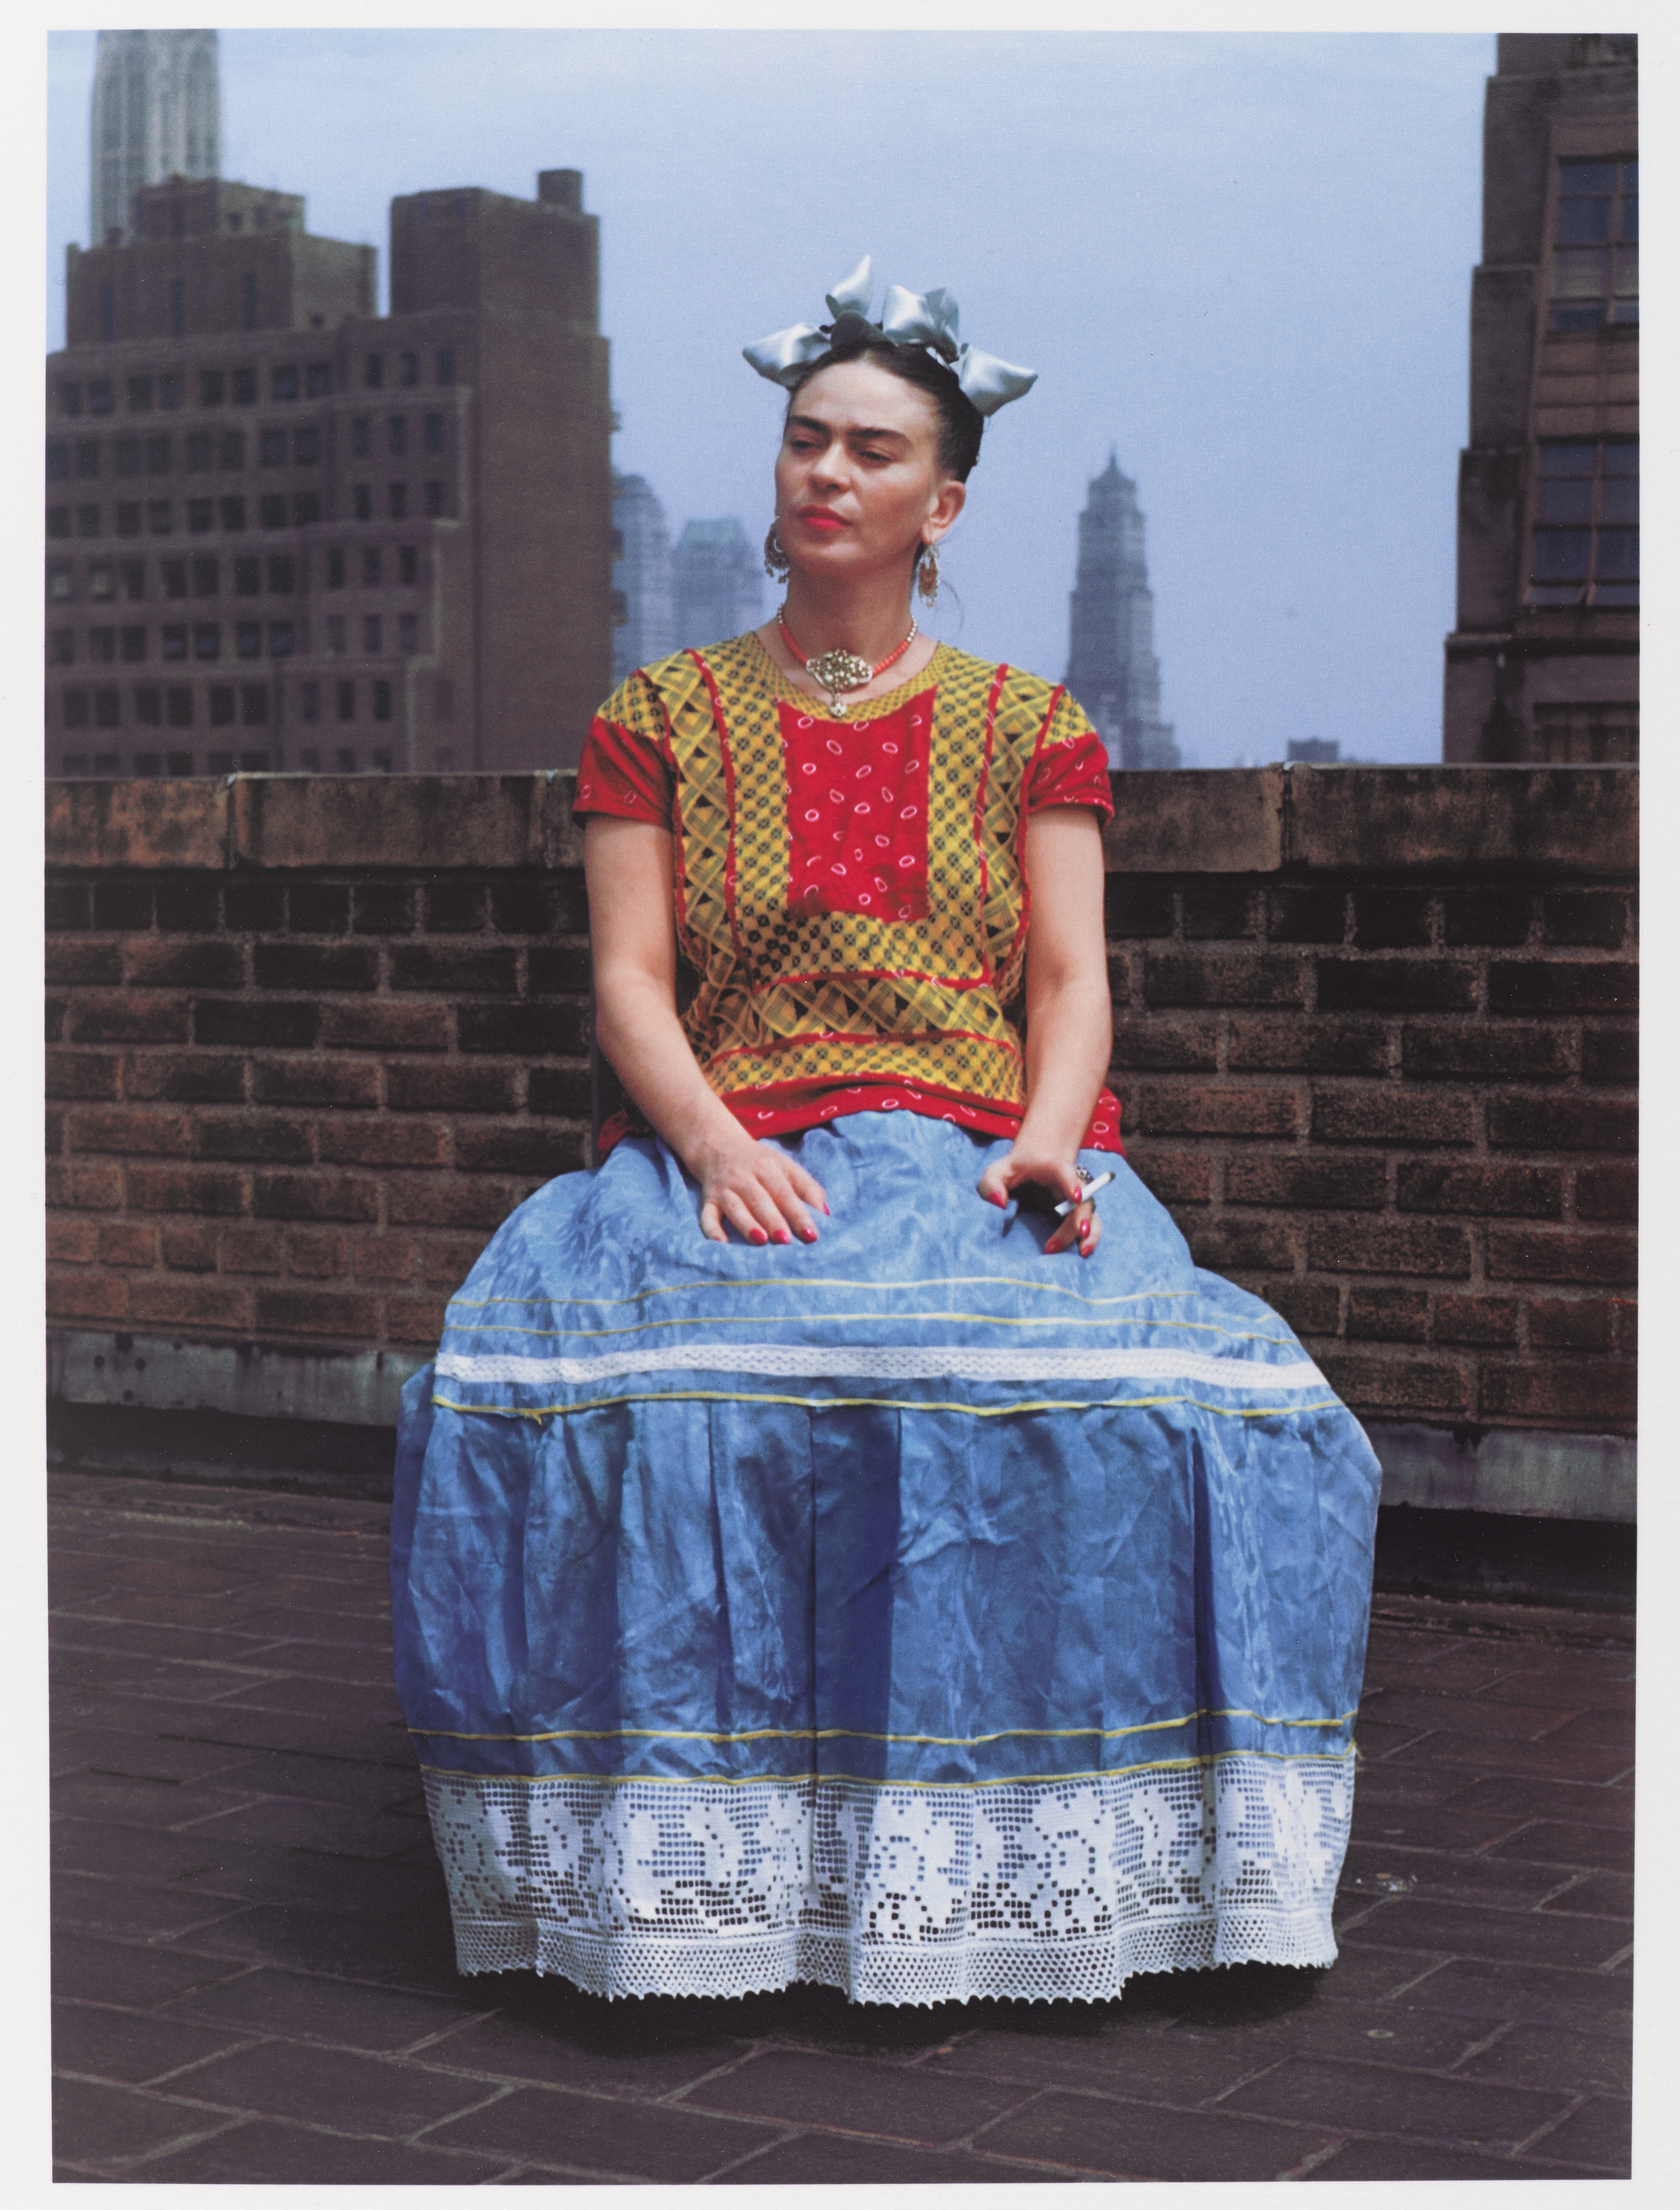 A photograph of Frida Kahlo taken in New York by Nickolas Muray.